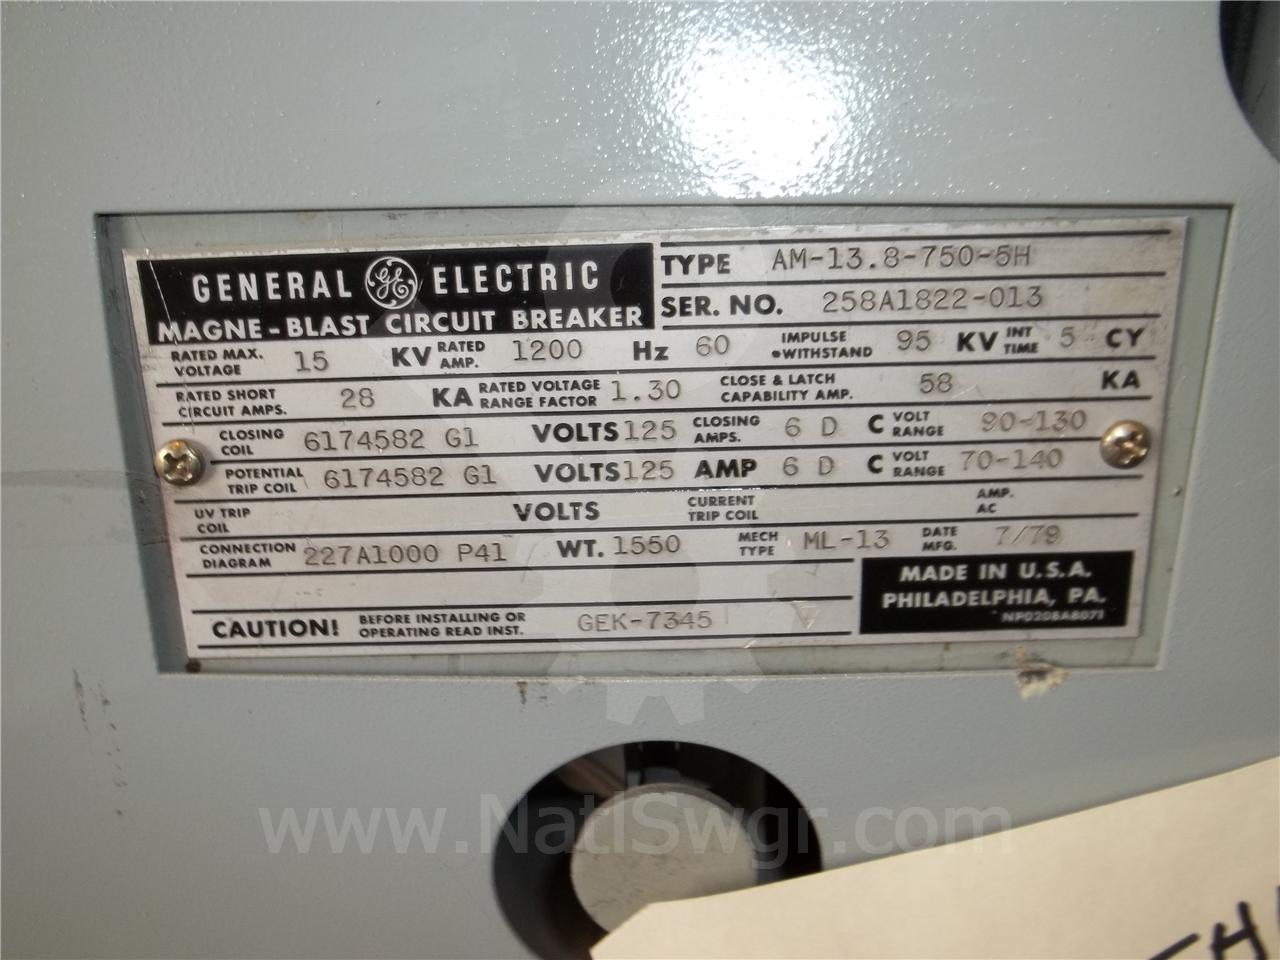 AM 13.8-750 AM-13.8-750-5H 1200A GE / General Electric ML-13 125VDC CONTROL